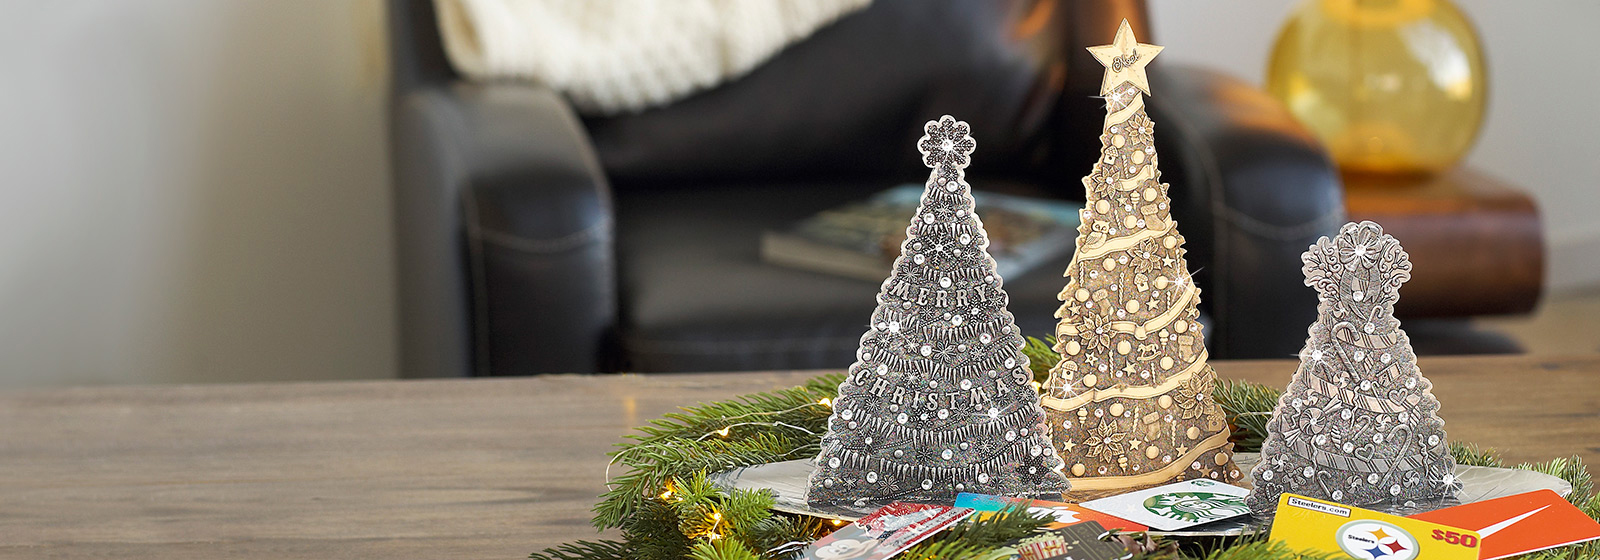 swarovski christmas trees - Professional Christmas Decorators Cost